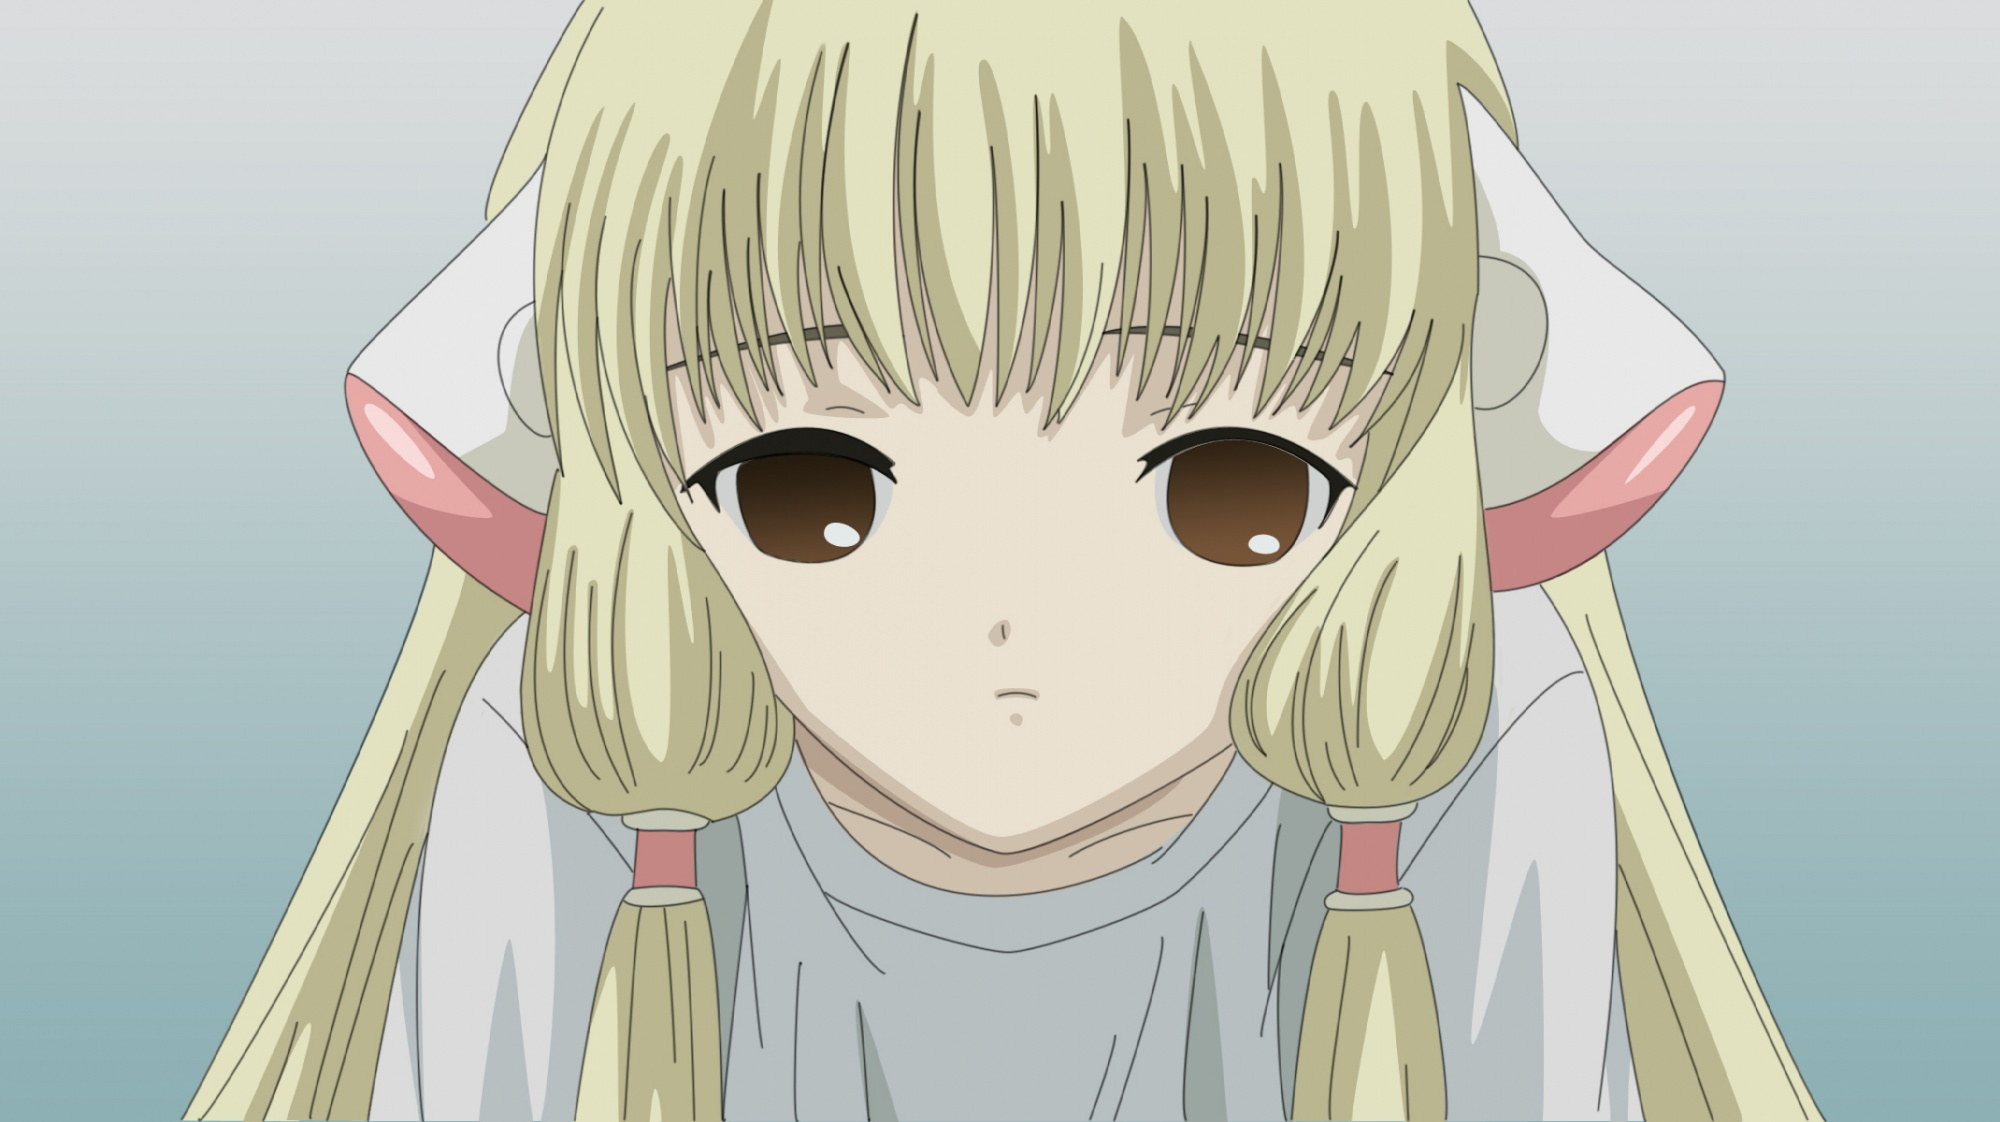 chii chobits vector